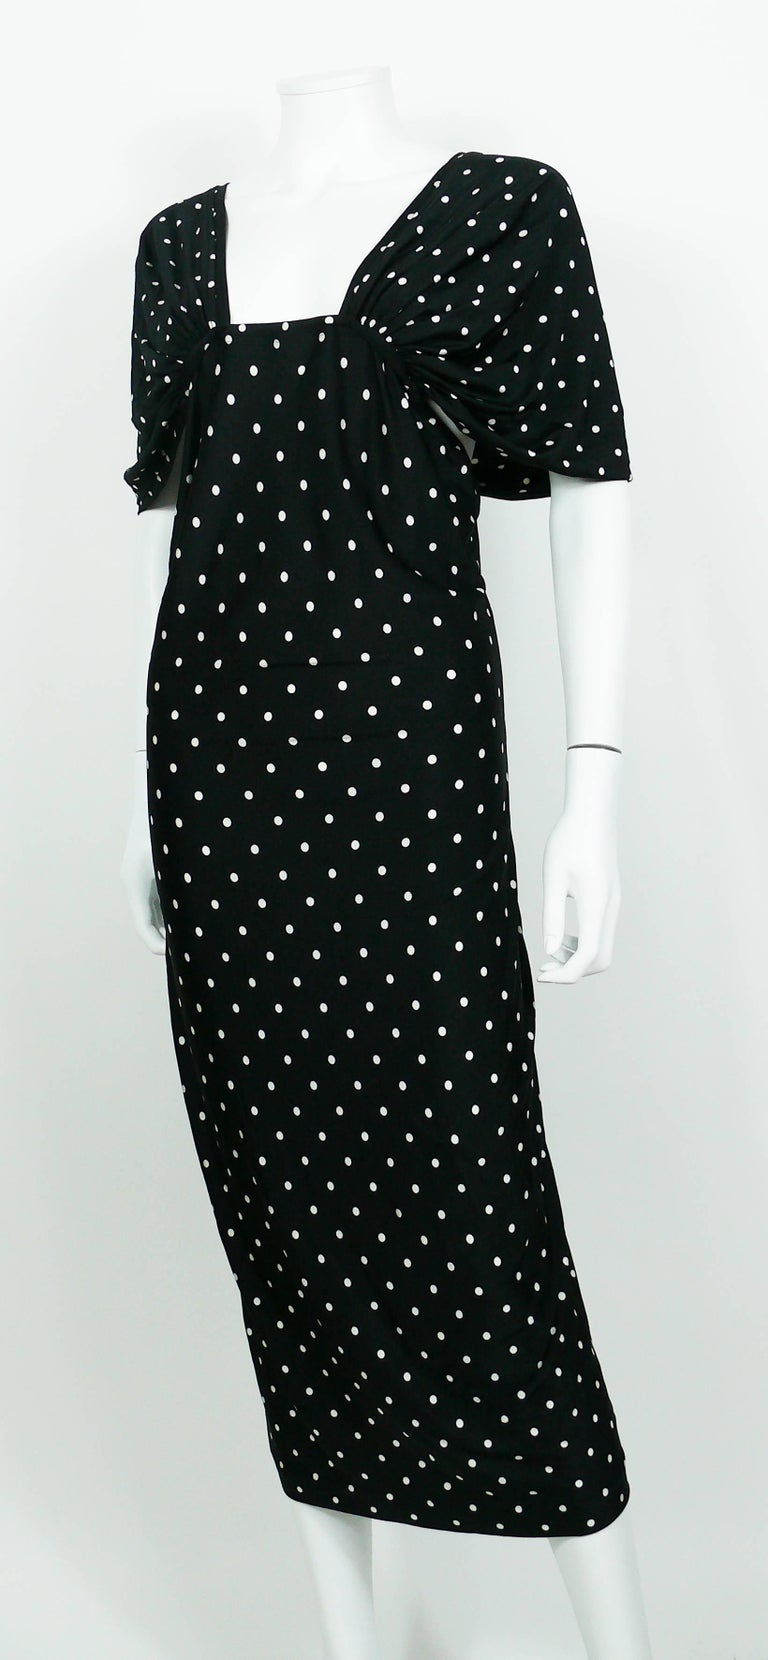 Patrick Kelly Vintage Black White Polka Dot Dress US Size 10 For Sale 1